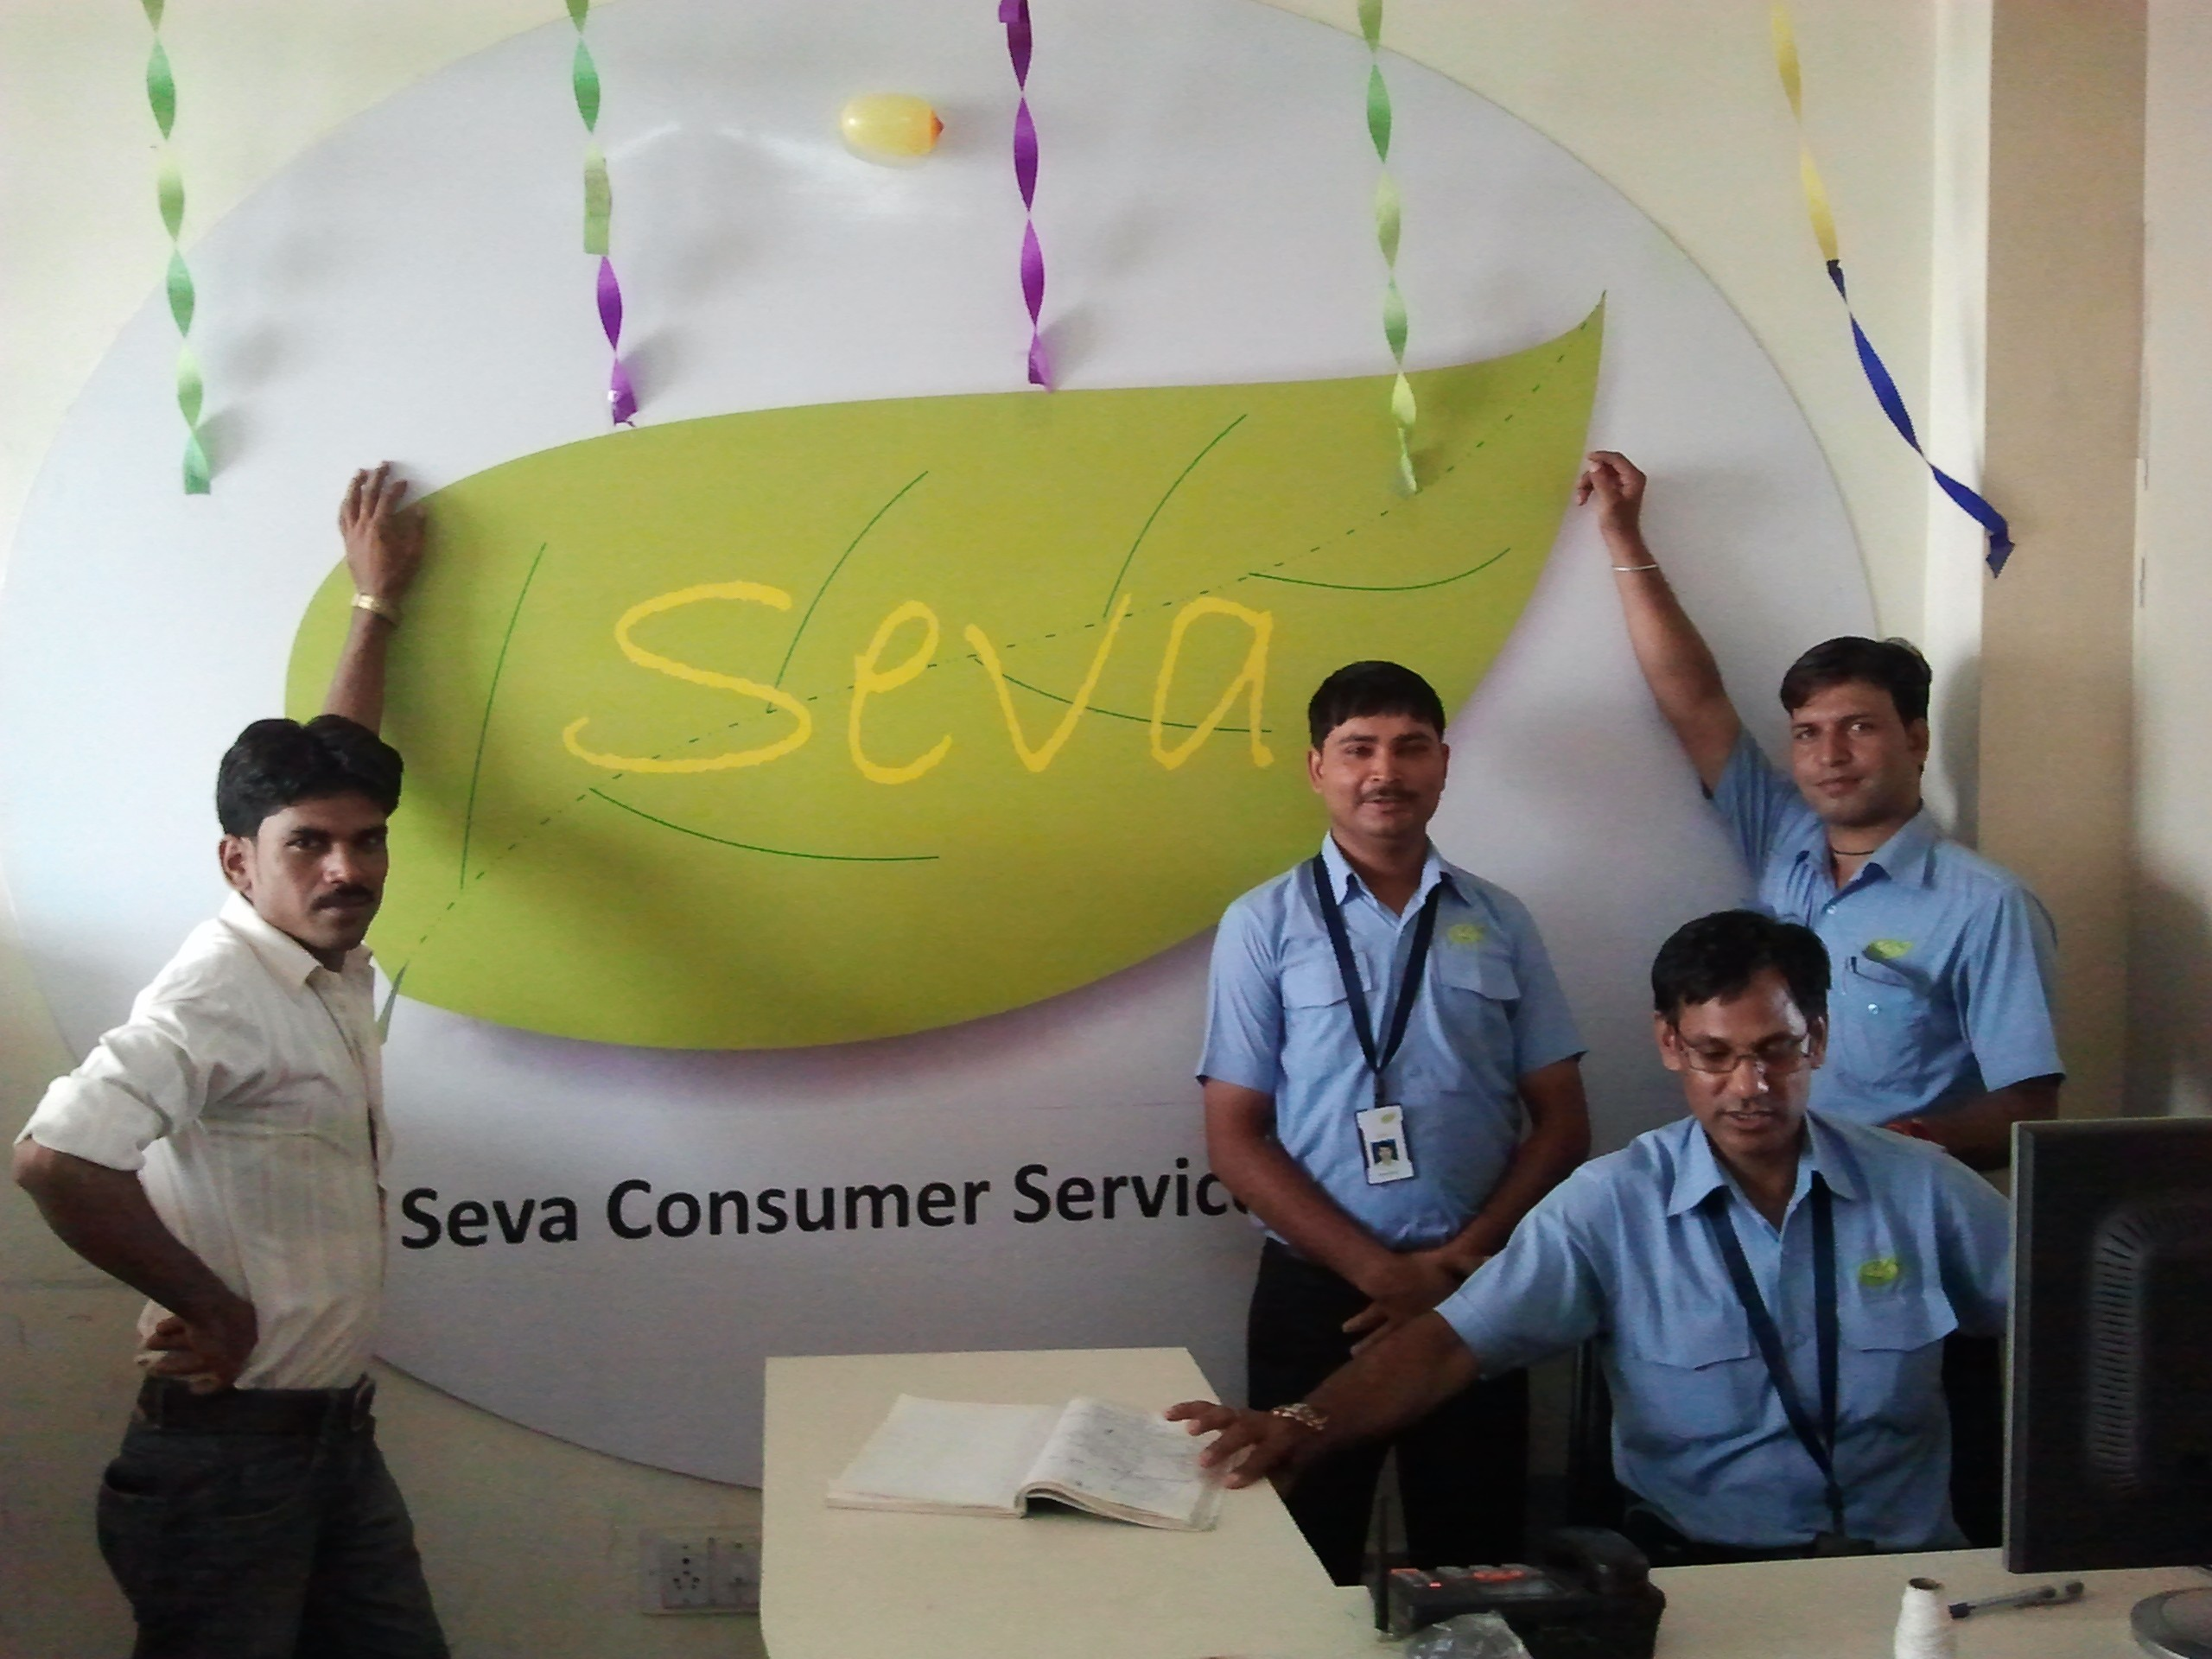 SEVA – Don't Let Your Comfort Go Down